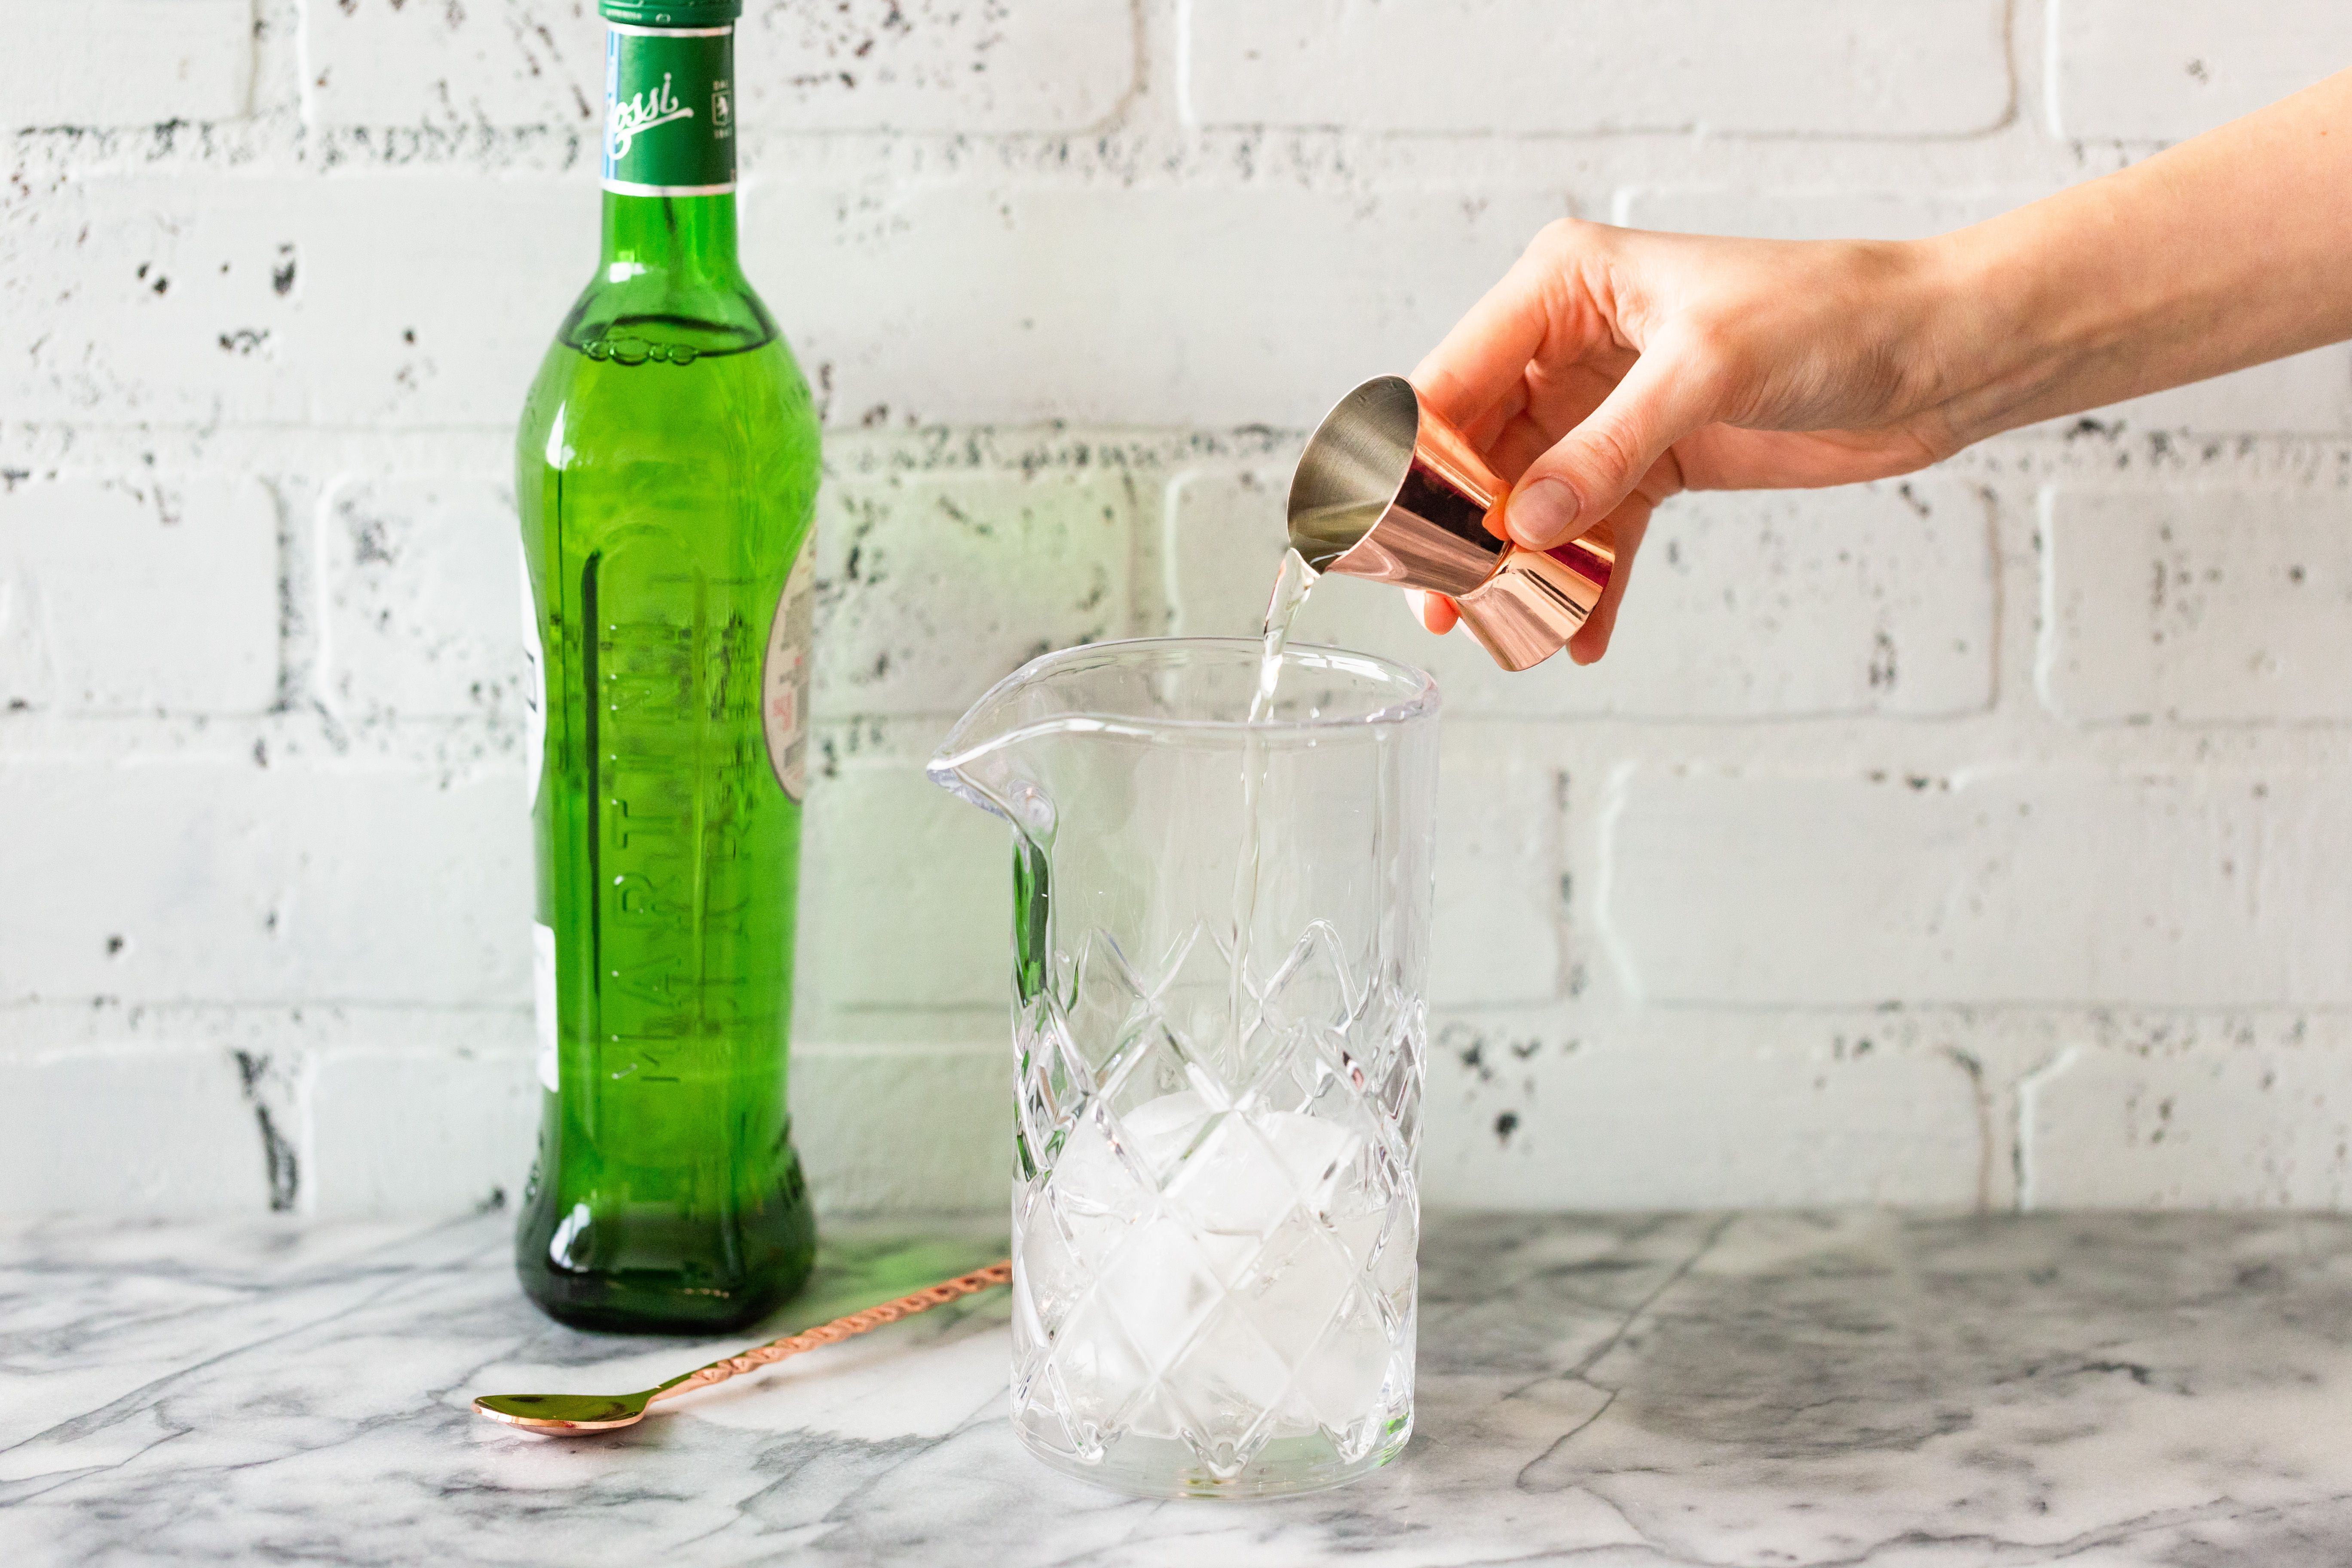 Mixing glass with ice cubes, gin, and dry vermouth.